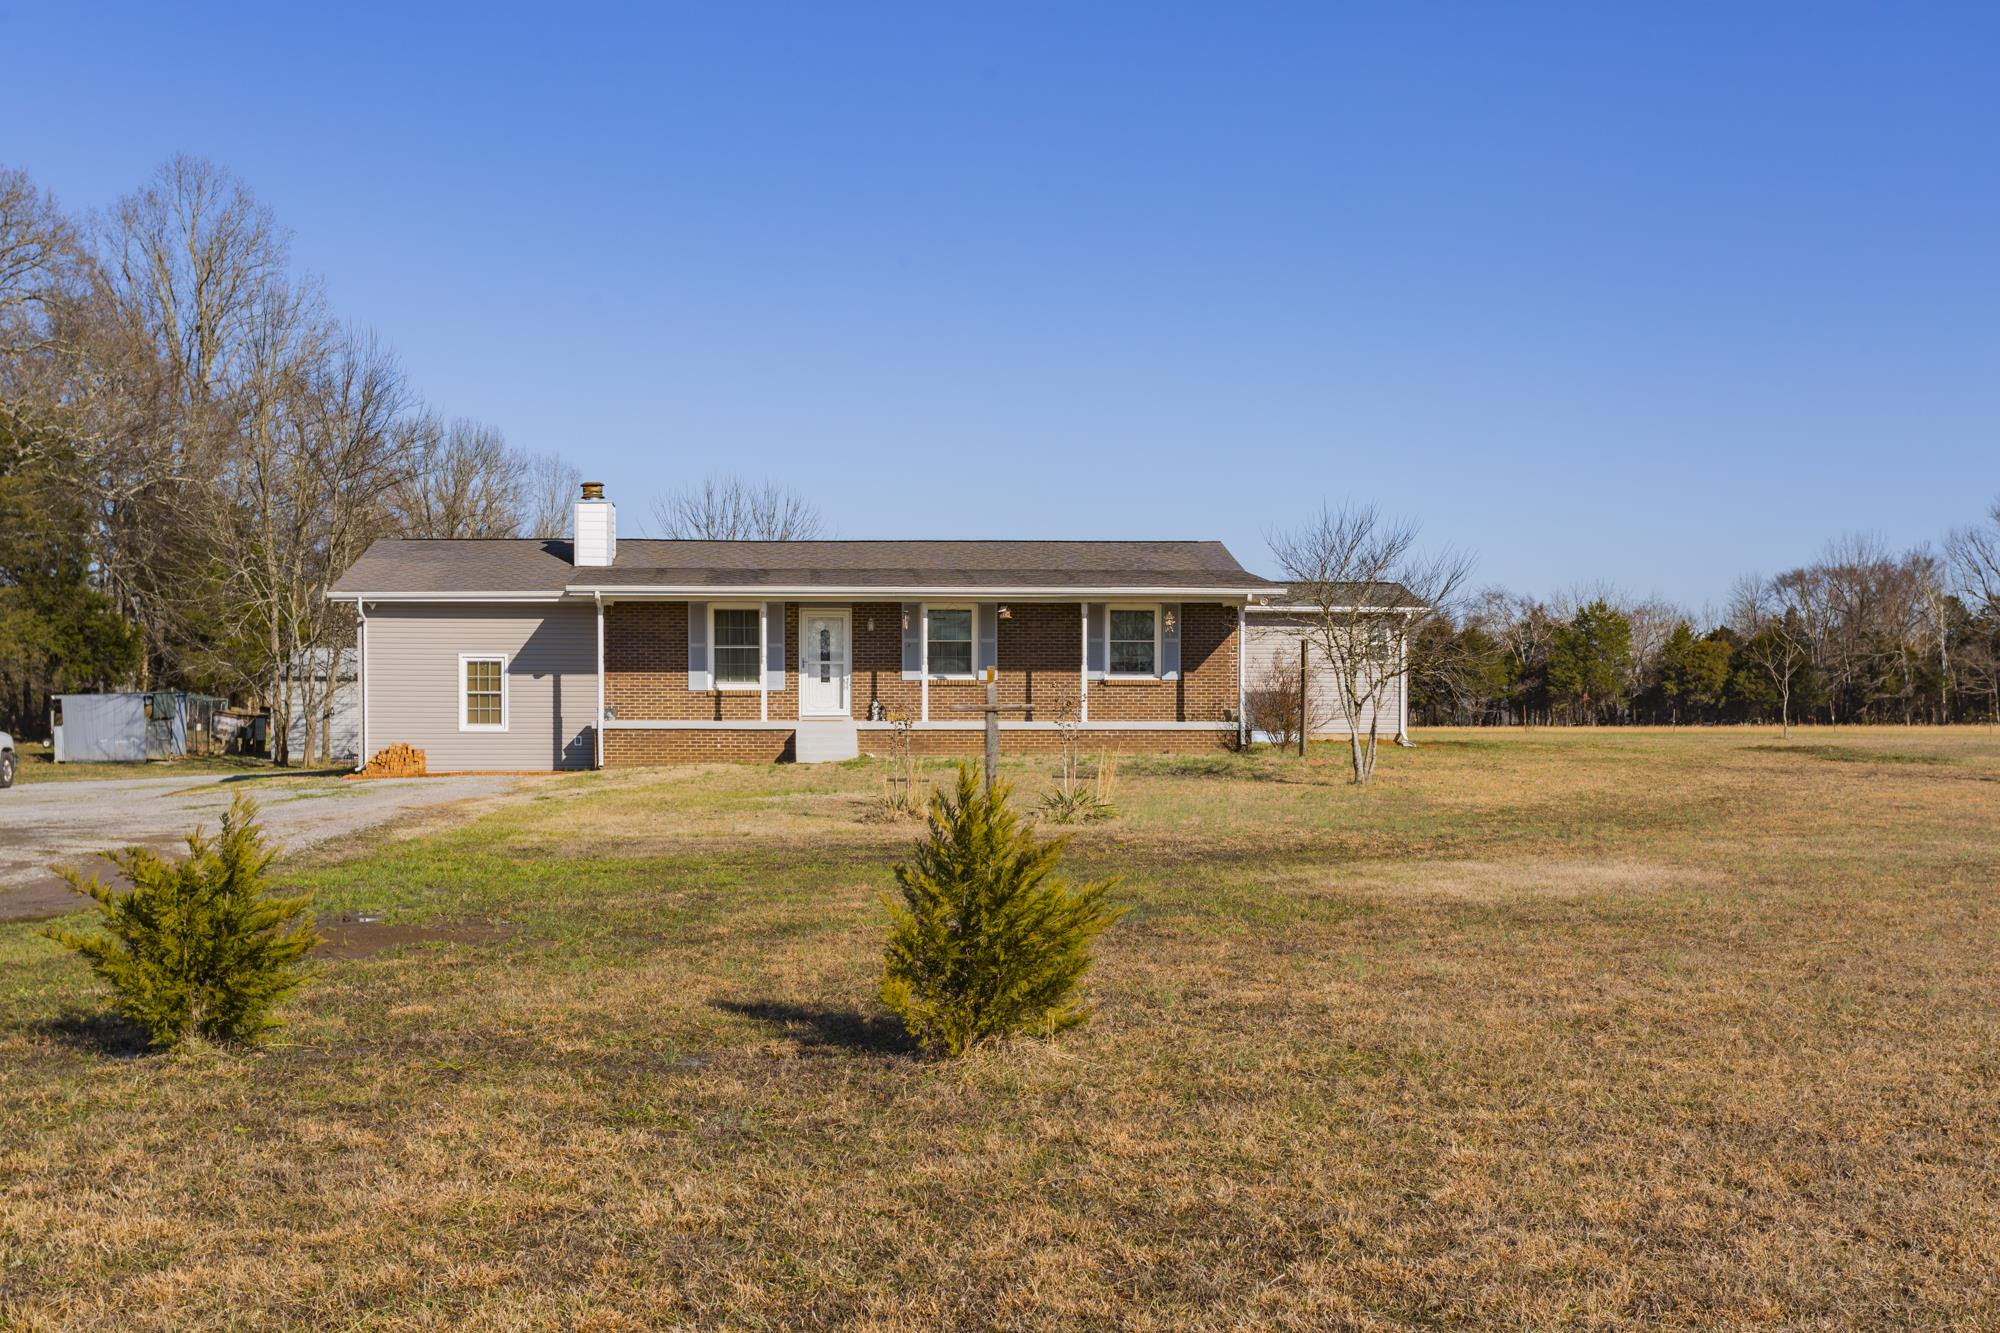 9040 Newtown Rd, Rockvale, TN 37153 - Rockvale, TN real estate listing